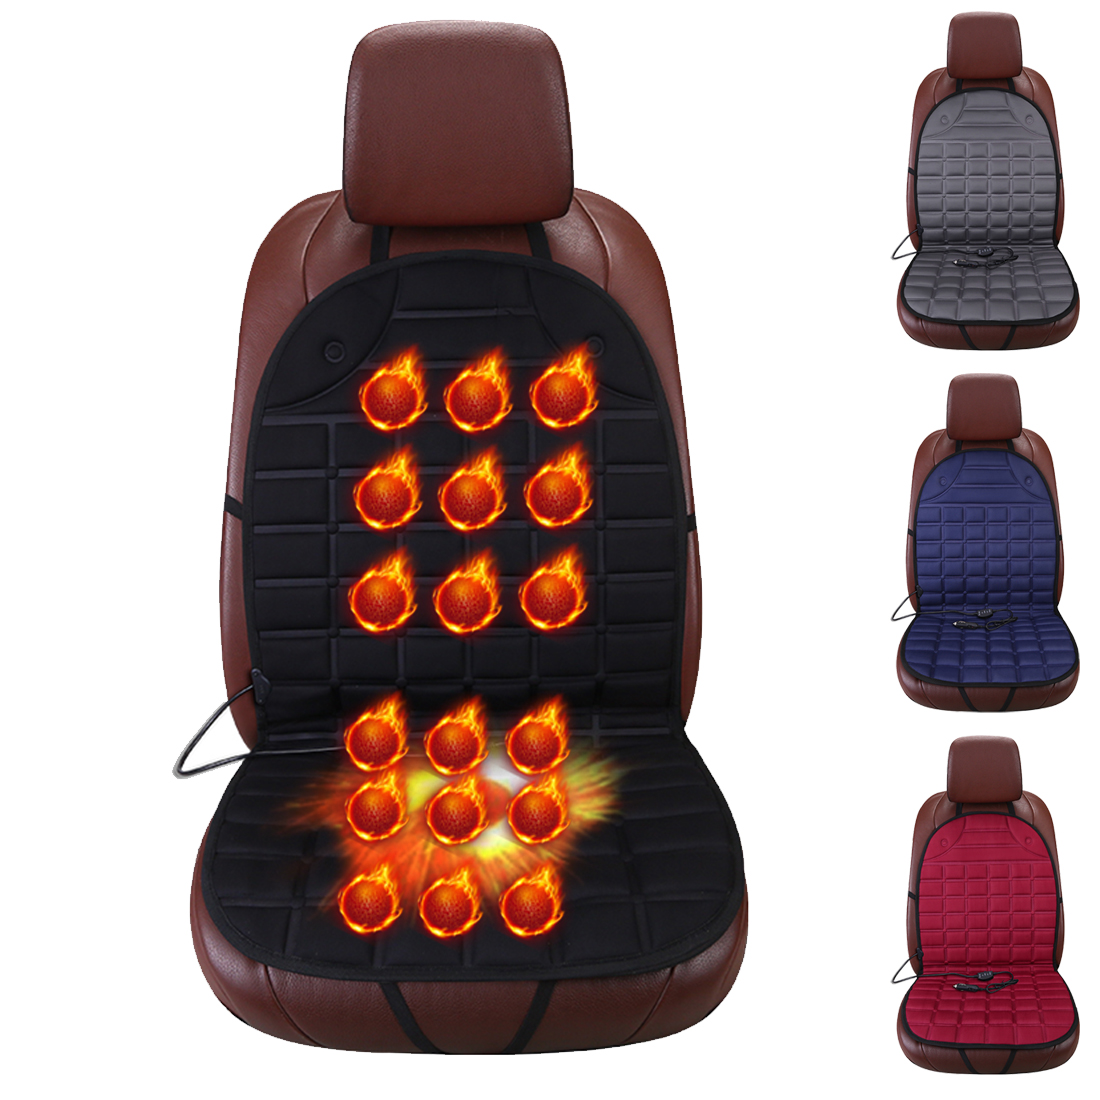 Dewtreetali New 12V Heated Car Seat Cushion Cover Seat Heater Warmer Winter Household Cardriver Heated Seat Cushion ноутбук hp 15 db0195ur amd a4 9125 2300 mhz 15 6 1920x1080 4gb 500gb hdd dvd нет amd radeon r3 wi fi bluetooth windows 10 home